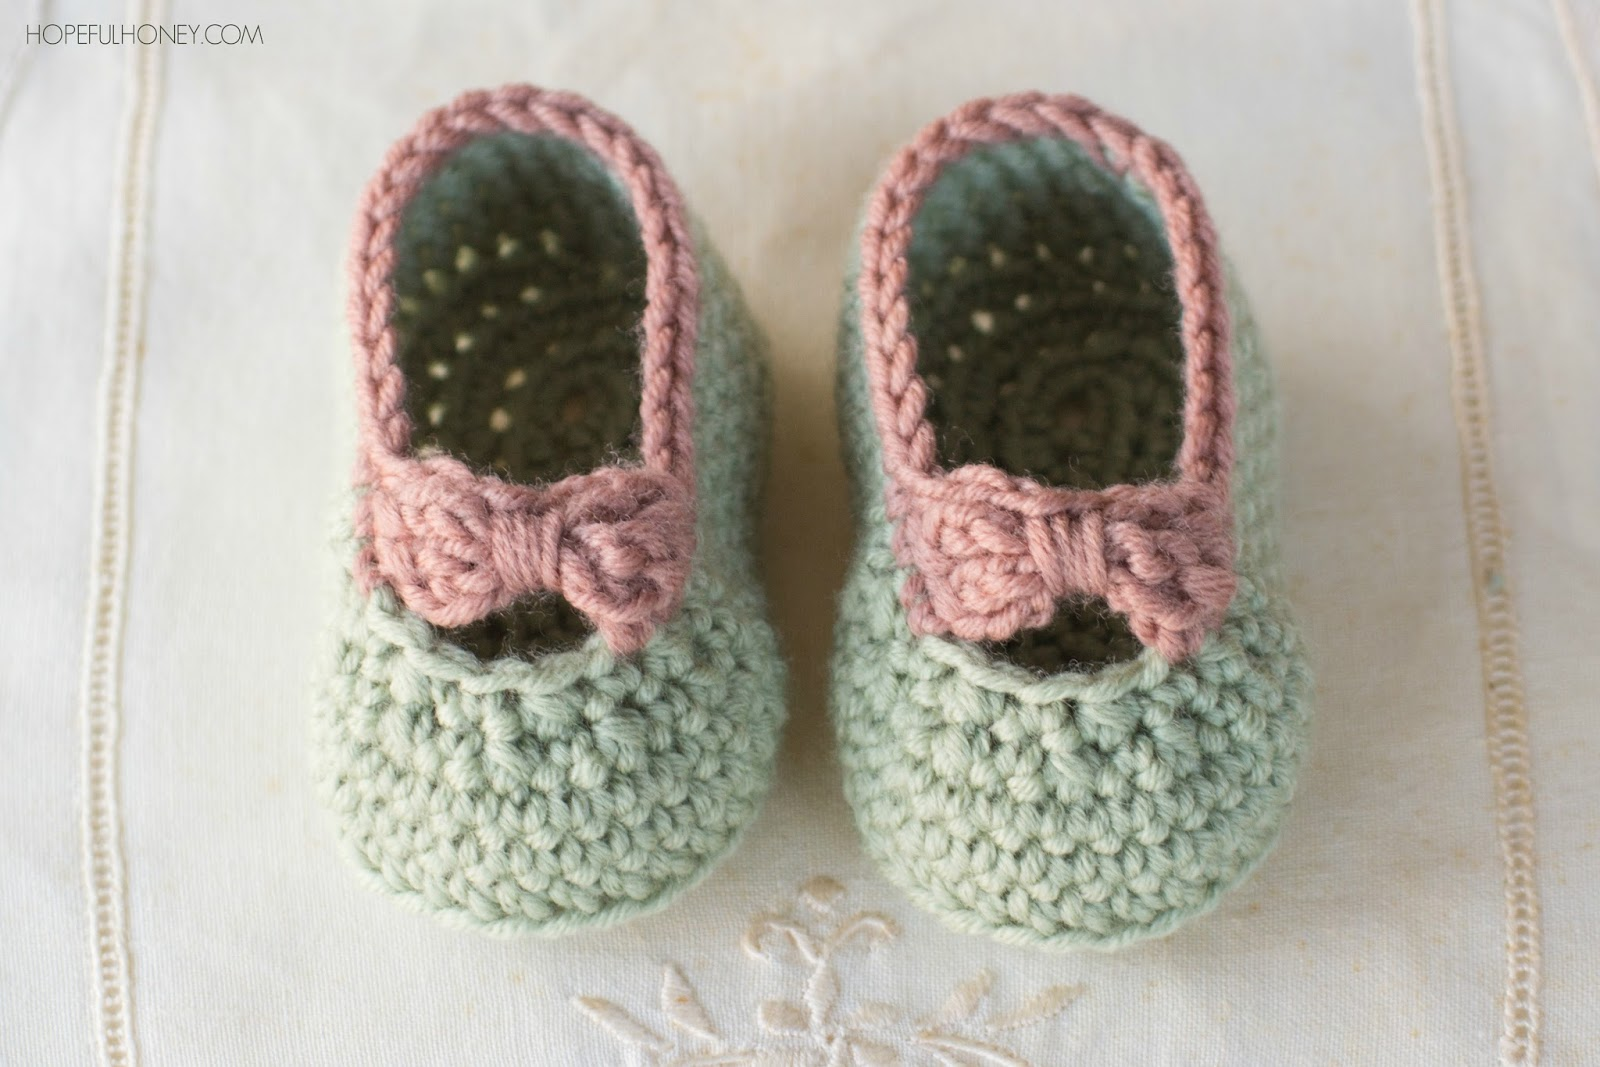 Crochet Create Little Lady Baby Booties Free Crochet Pattern